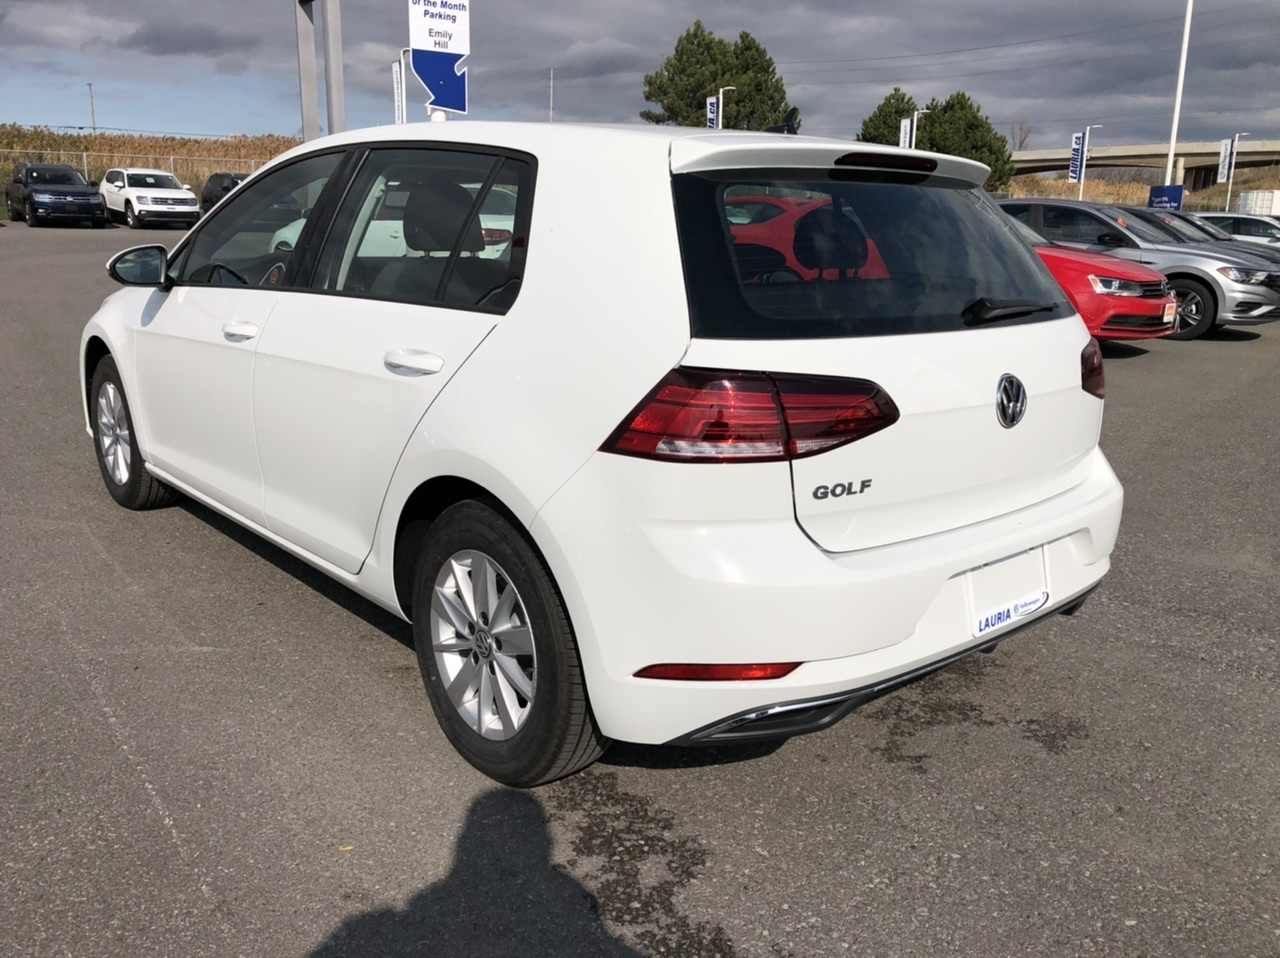 New 2019 Volkswagen Golf 1.4 TSI Comfortline Manual